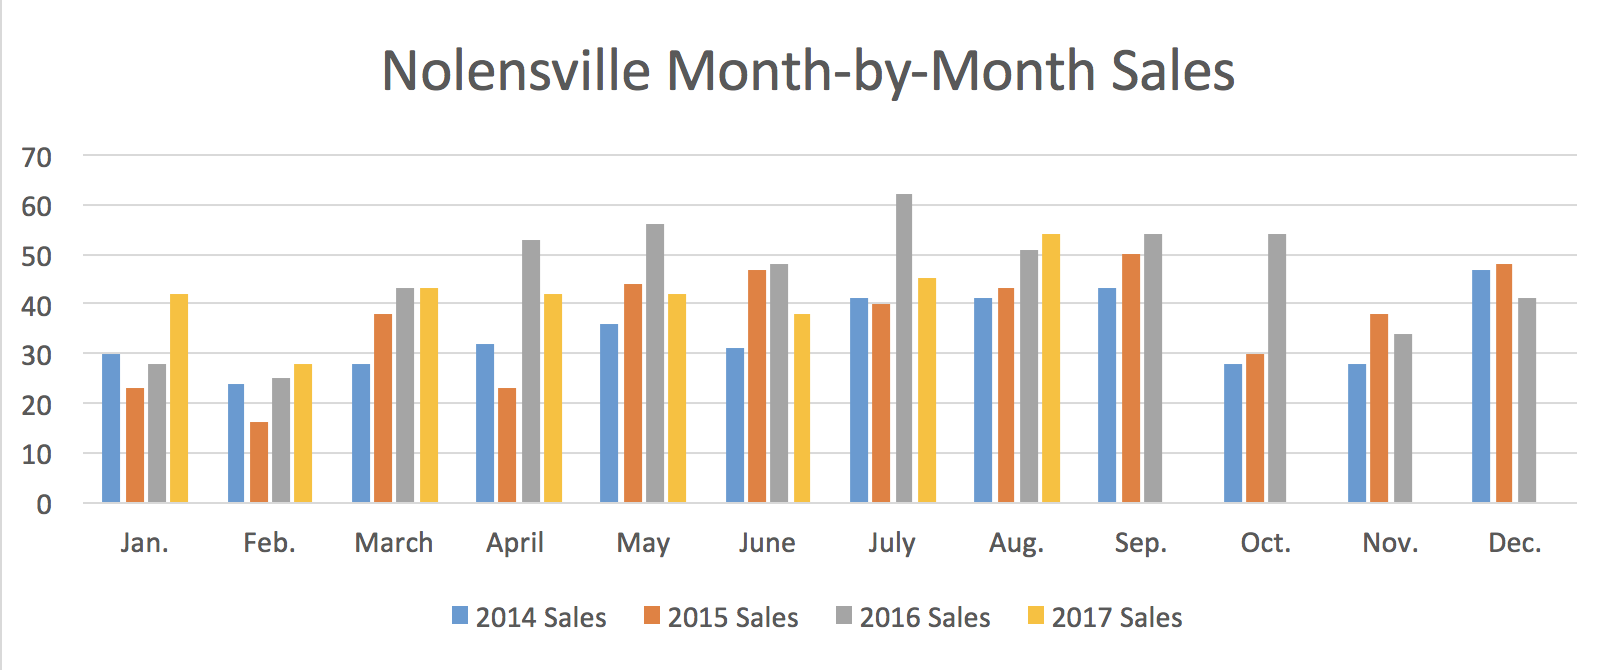 Nolensville Month-by-Month Sales August 2017